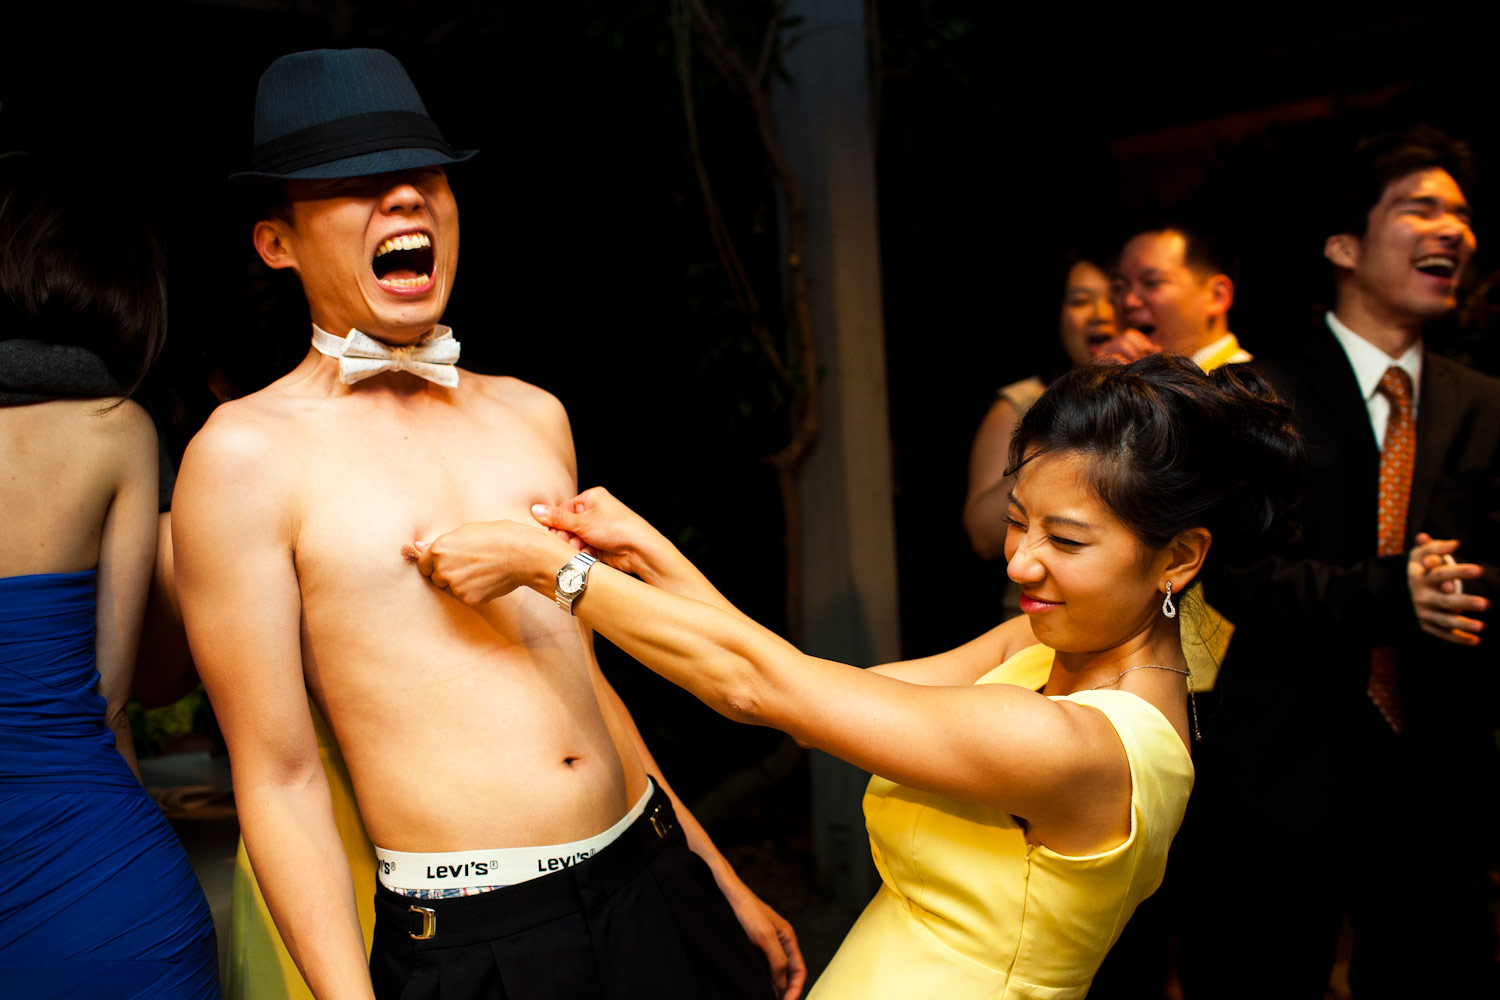 A bridesmaid gives a groomsman a titty-twister during the reception party at Wine and Roses in Lodi, California.